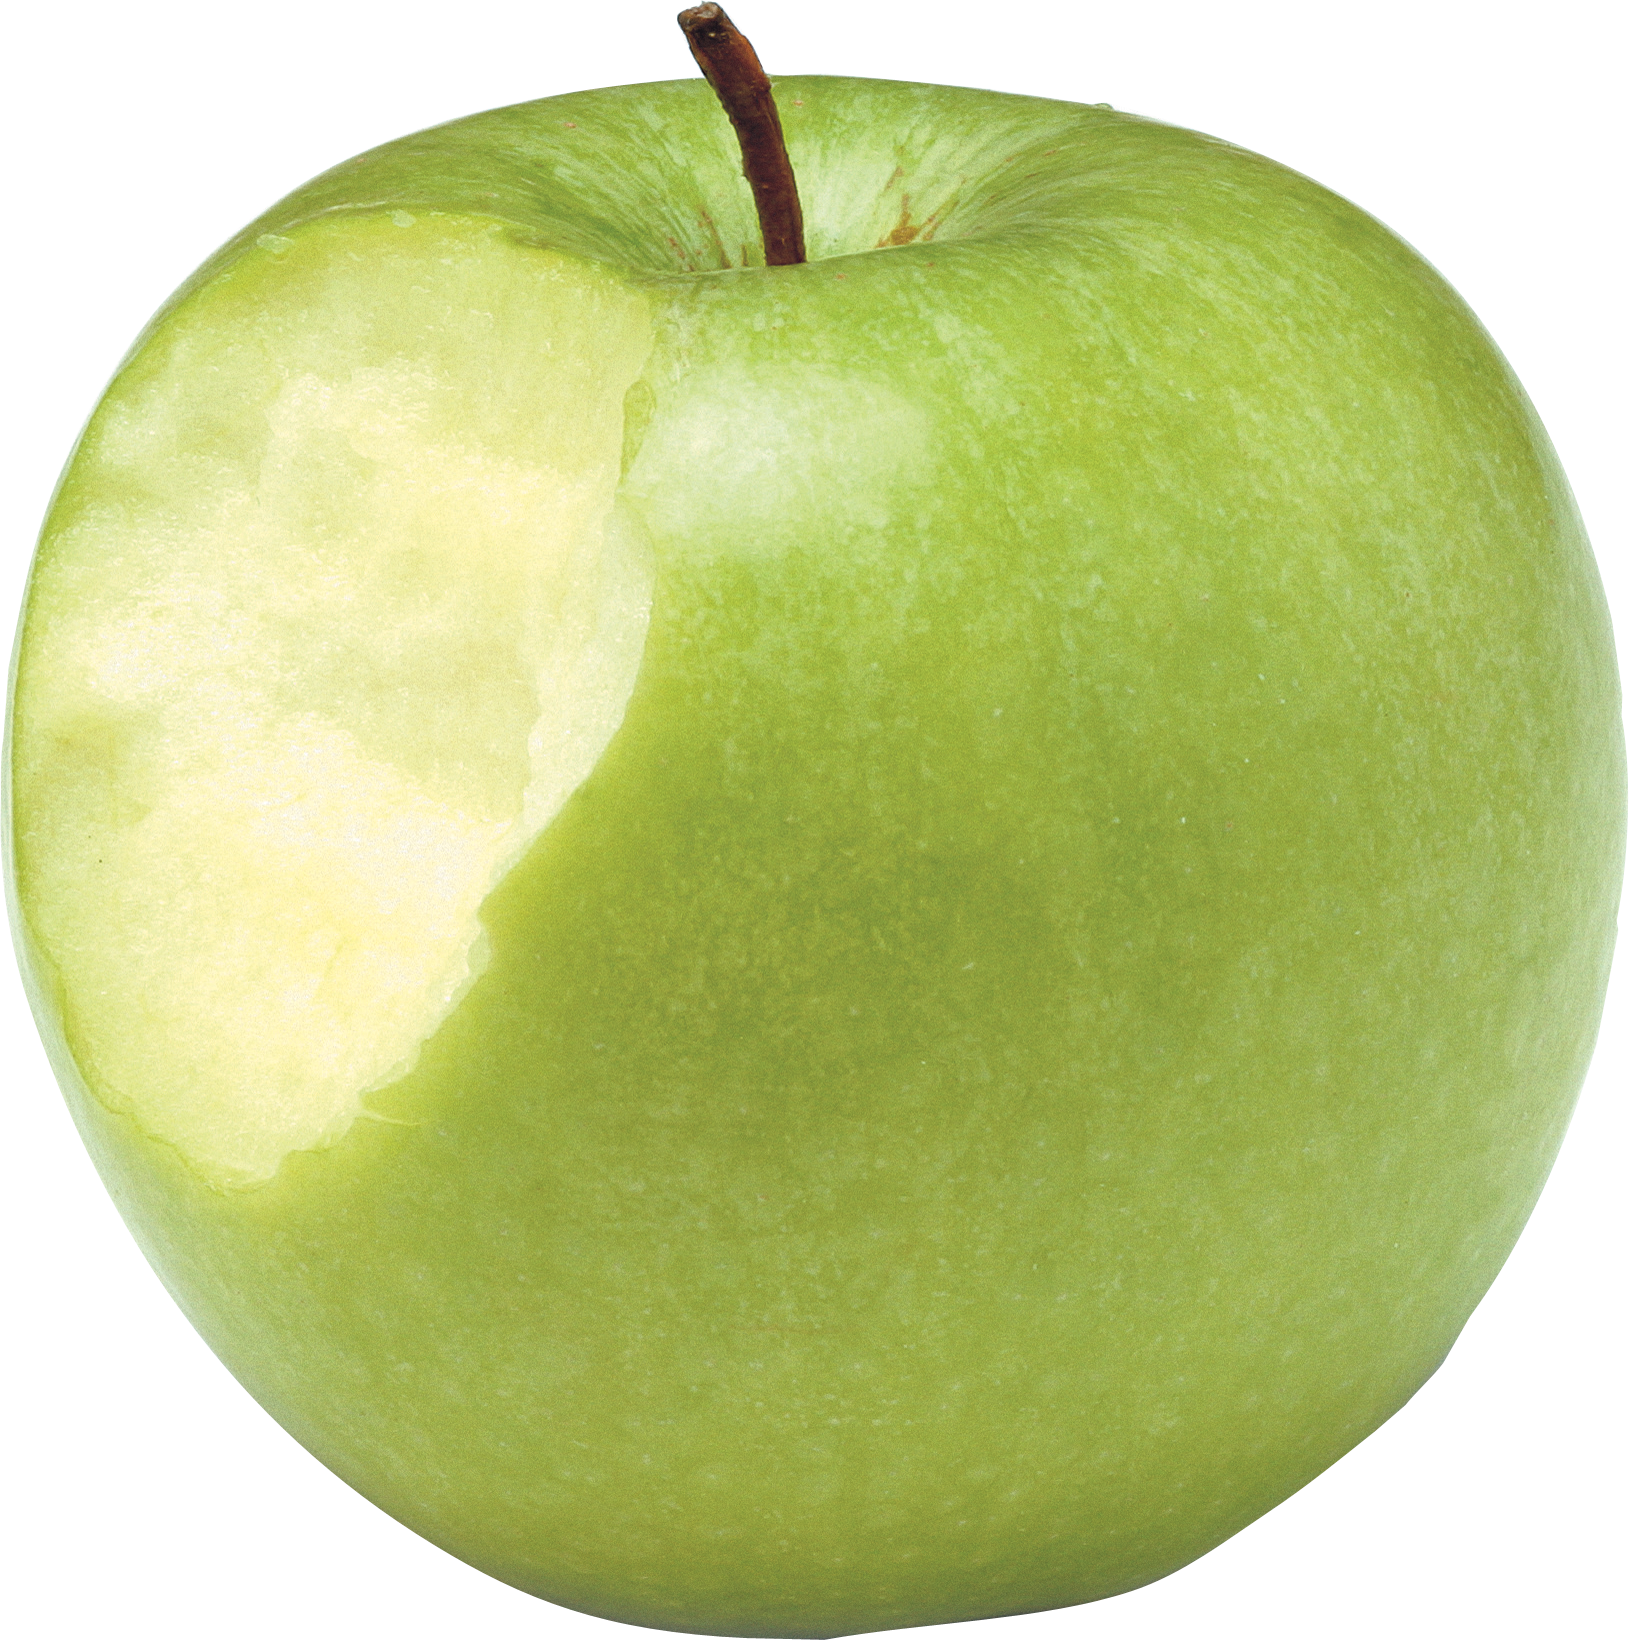 Apple with bite out of it clipart picture transparent library Apple PNG images free download, apple PNG picture transparent library